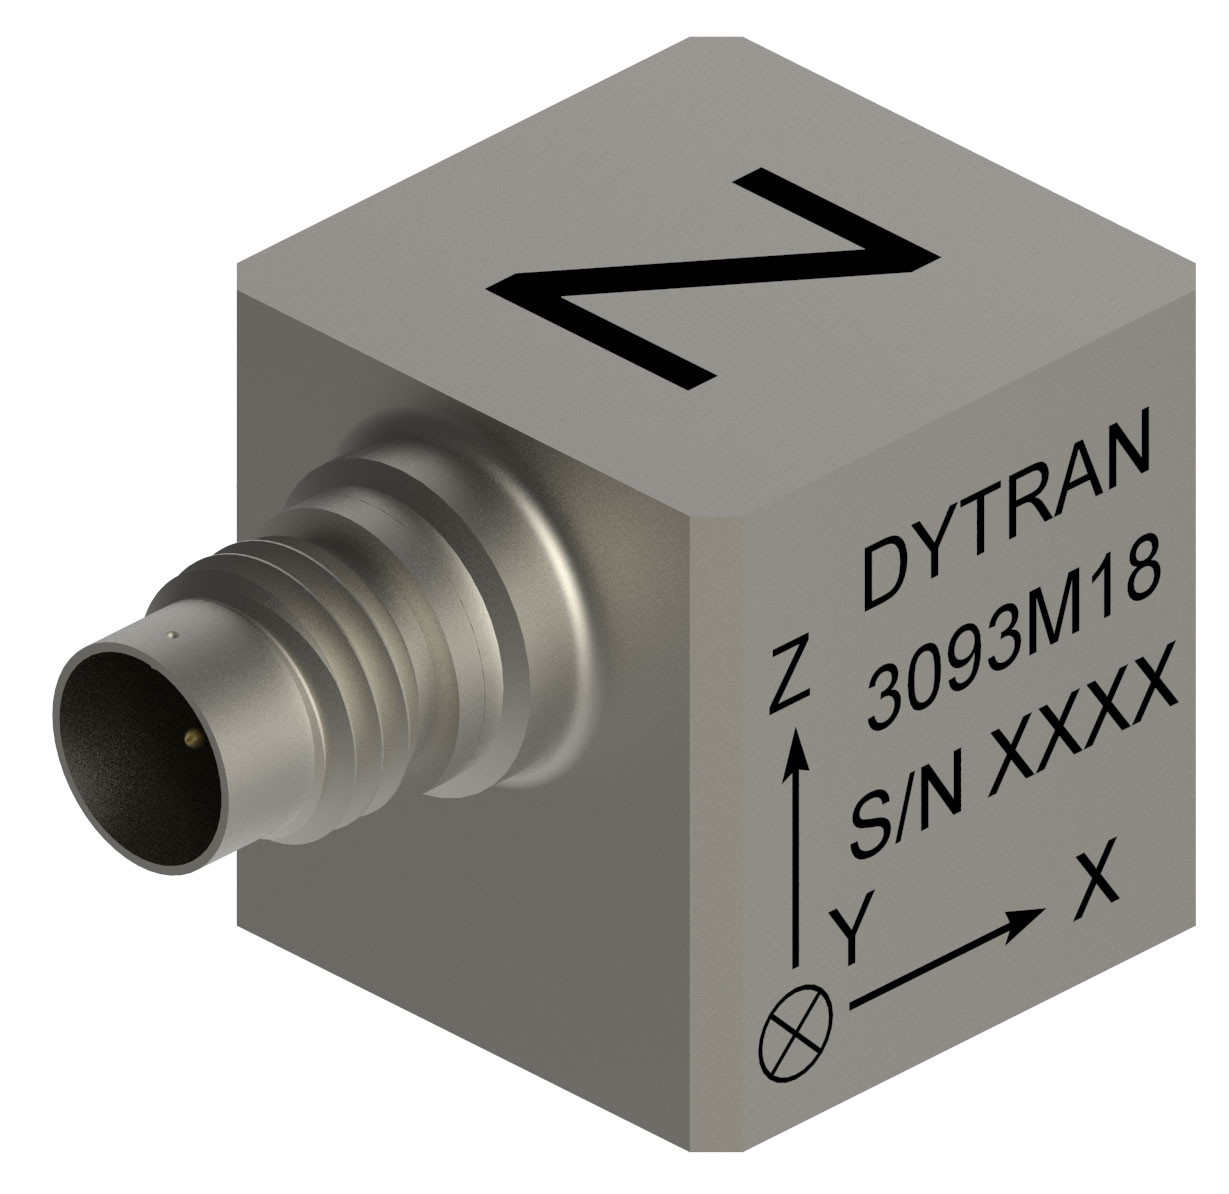 Miniature Accelerometer features IEEE 1451.4 TEDS.